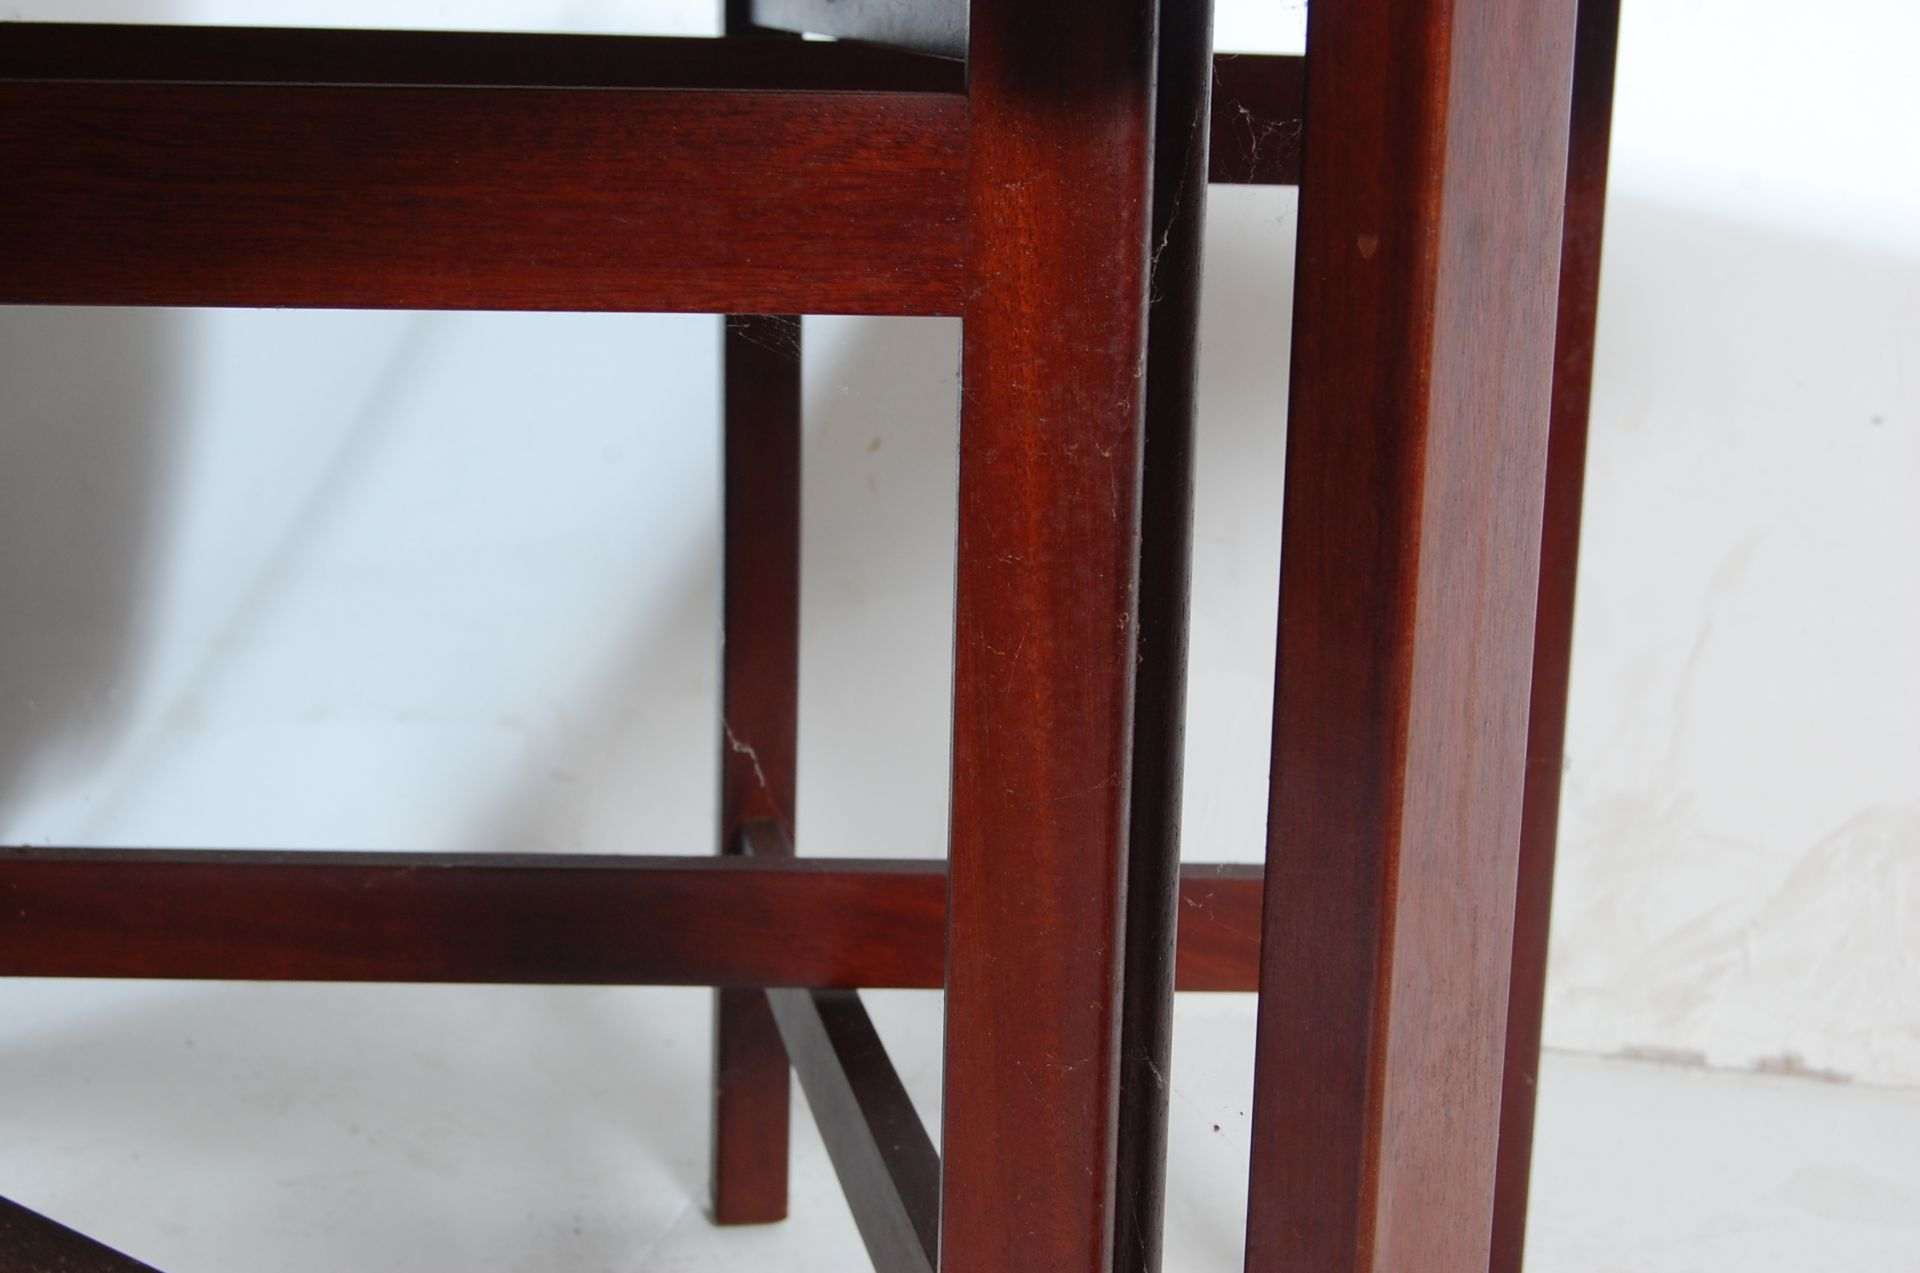 VINTAGE 20TH CENTURY TEAK WOOD DANISH INSPIRED DROP LEAF DINING TABLE - Image 5 of 5